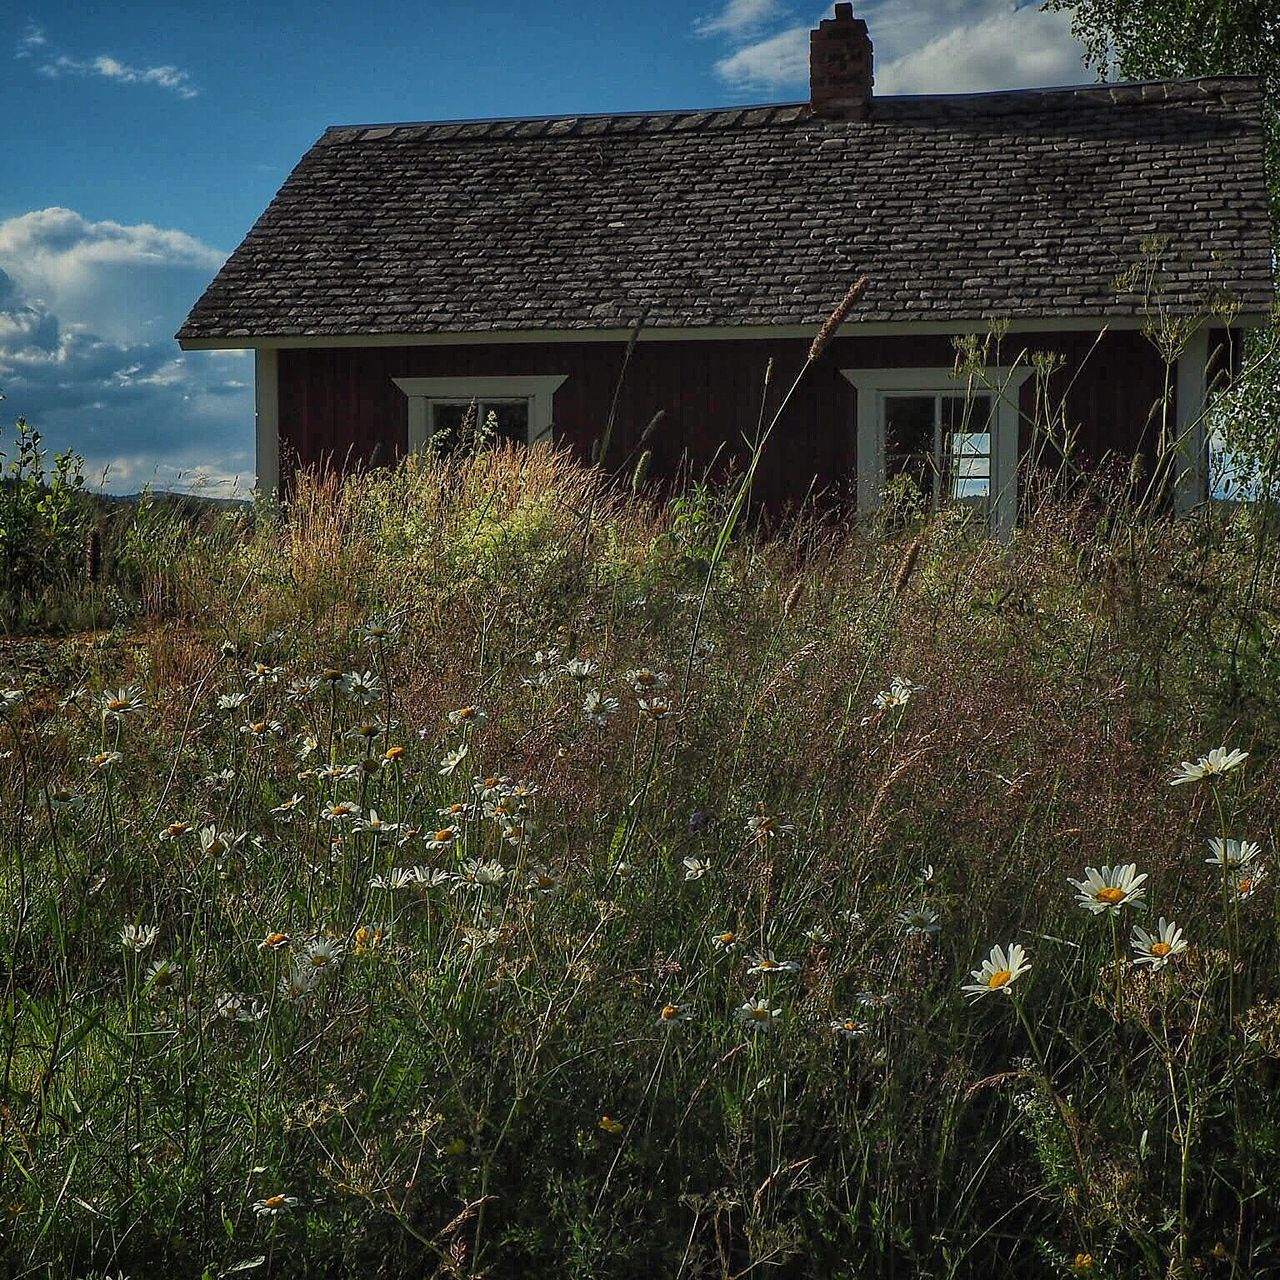 built structure, architecture, building exterior, house, field, no people, country house, plant, grass, outdoors, landscape, abandoned, day, growth, nature, sky